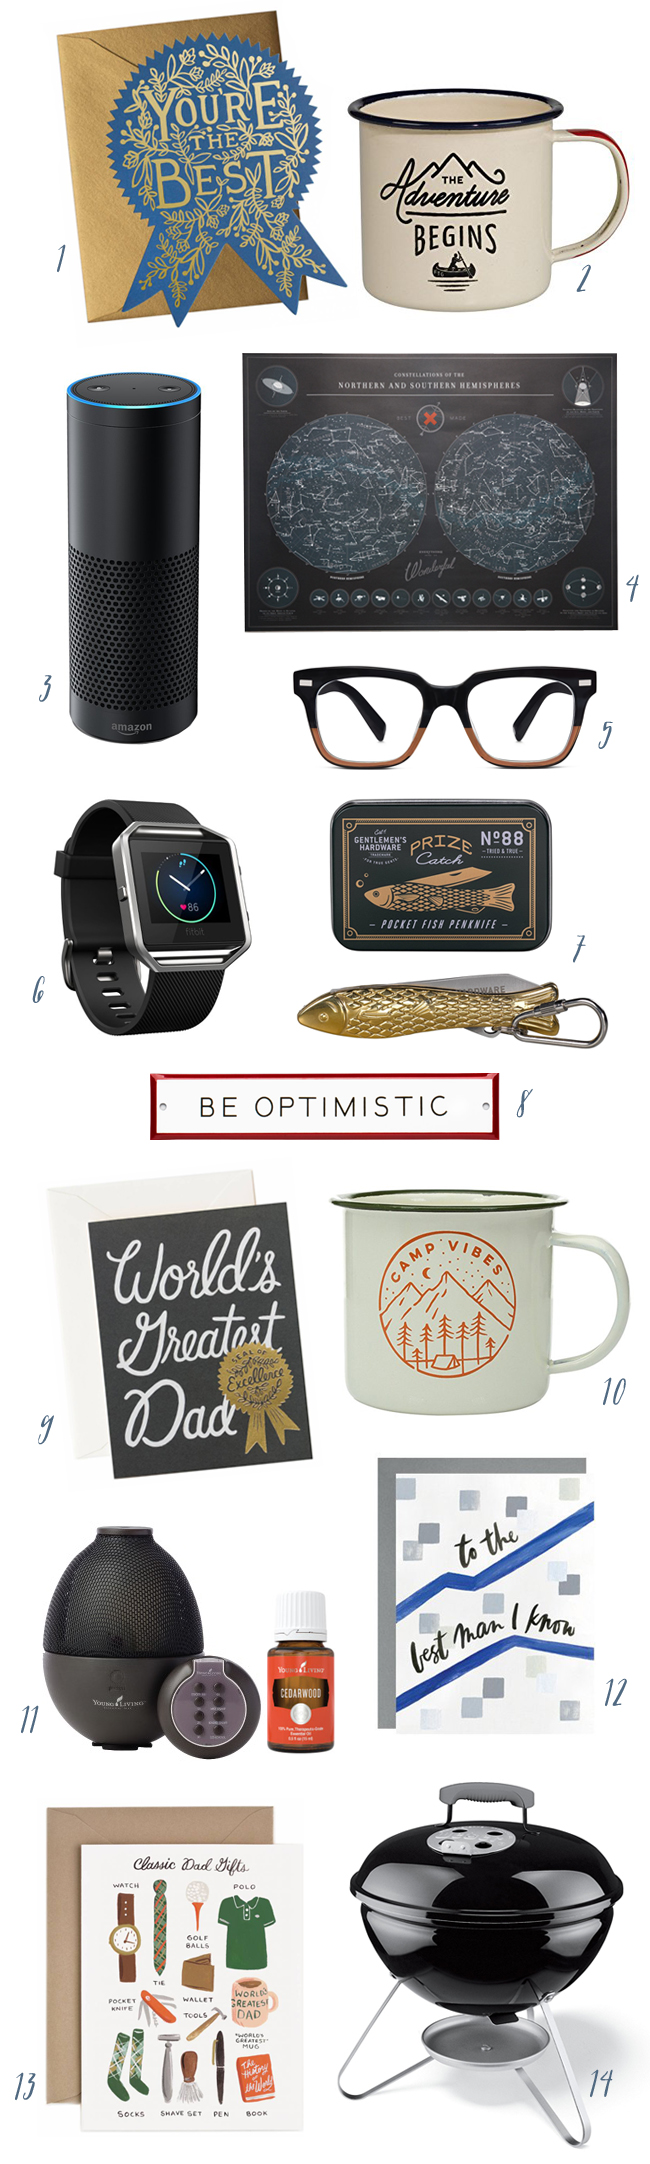 Gather: Gift Ideas for Father's Day